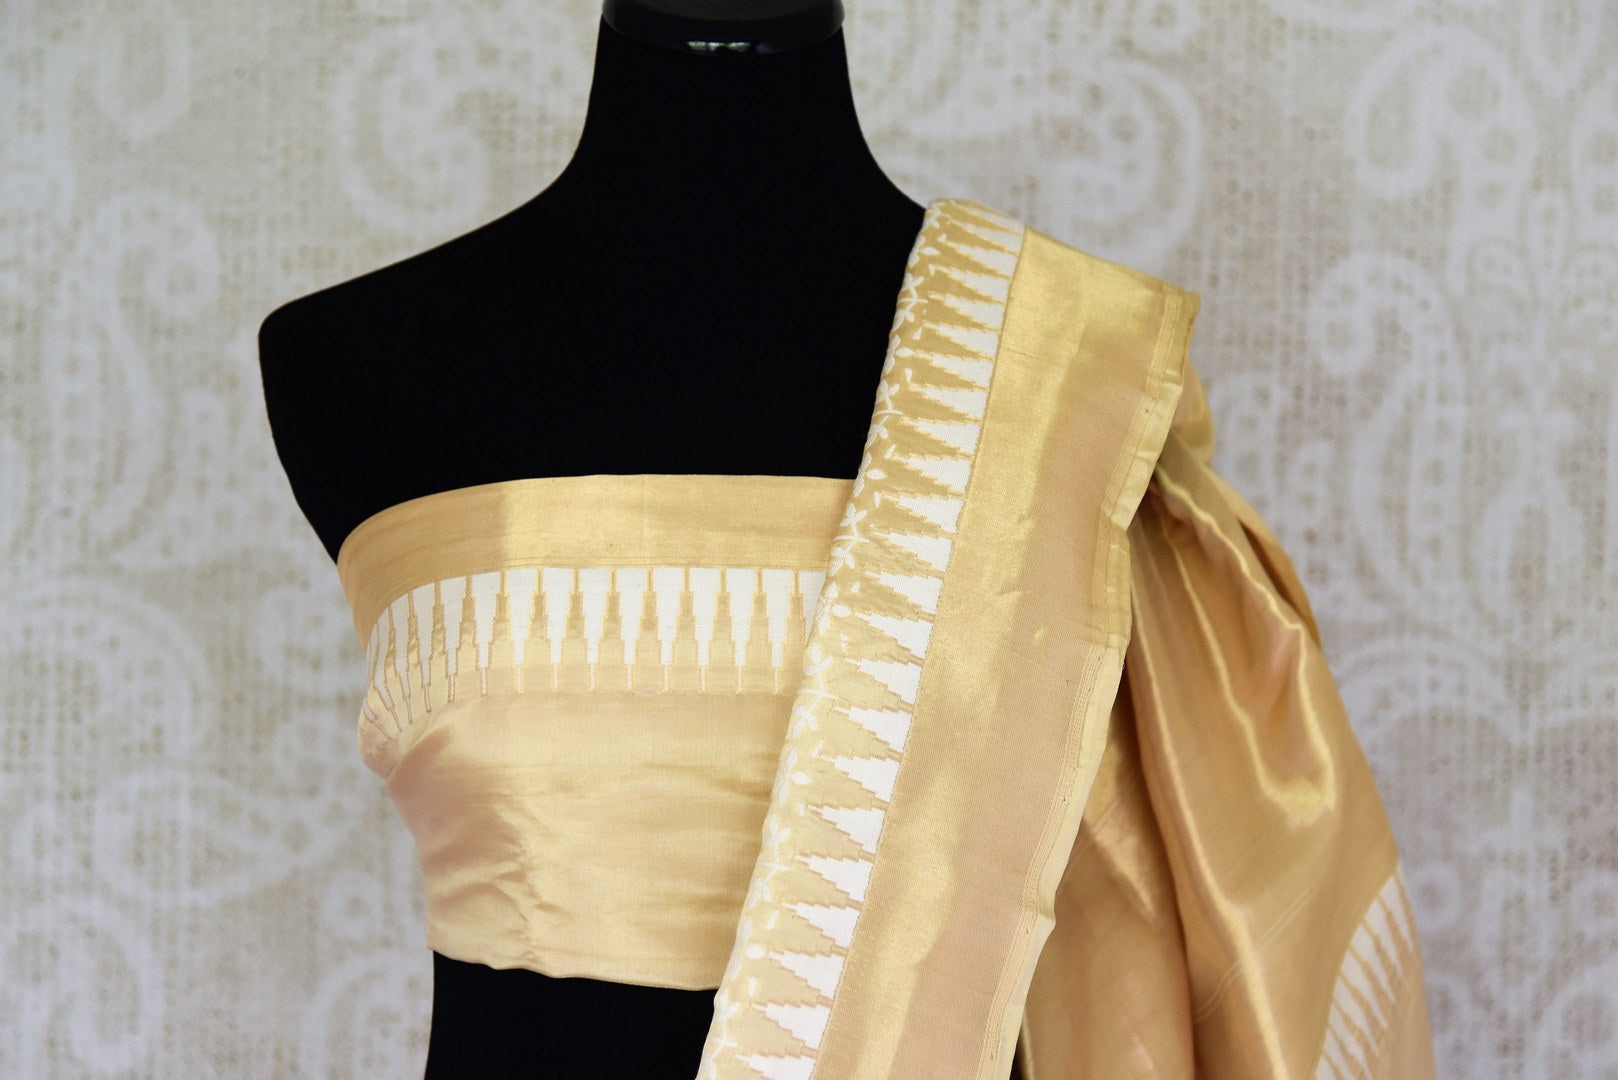 Captivating gold Benarasi silk saree with zari border buy online in USA and white floral design. Adorn your style with a range of exquisite handloom sarees from Pure Elegance Indian clothing store in USA. We have an exquisite range of Indian designer sarees, silk sarees, Banarasi saris and many other varieties also available at our online store.-blouse pallu